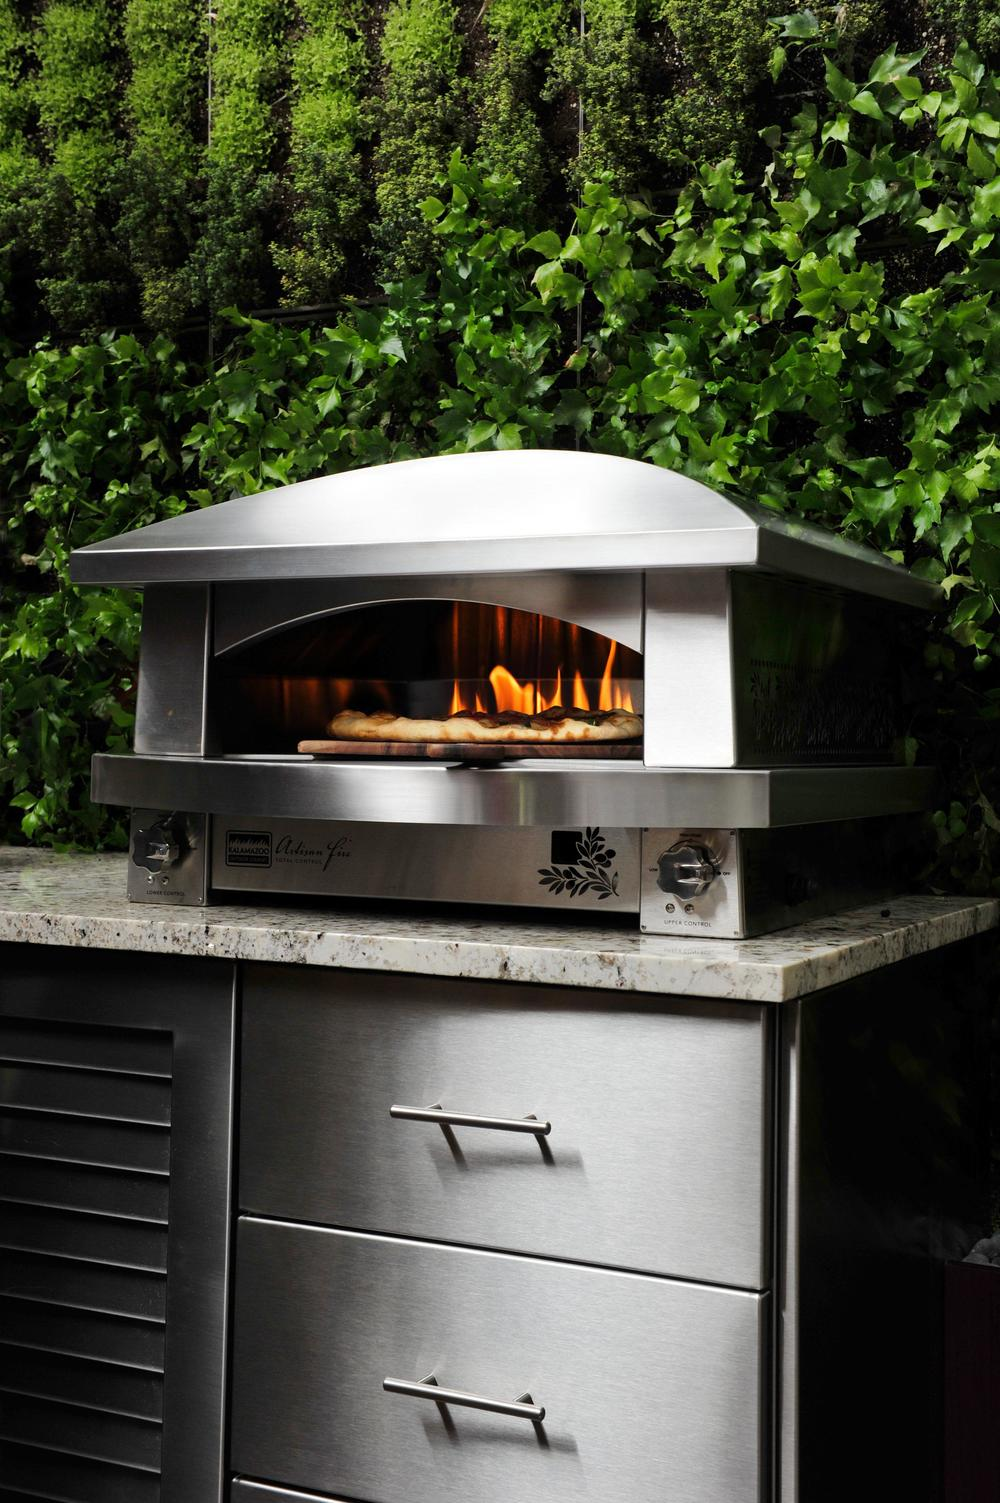 Artisan_Fire_Pizza_Oven_Green_Wall_Vertical_Kalamazoo_Outdoor_Gourmet.JPG